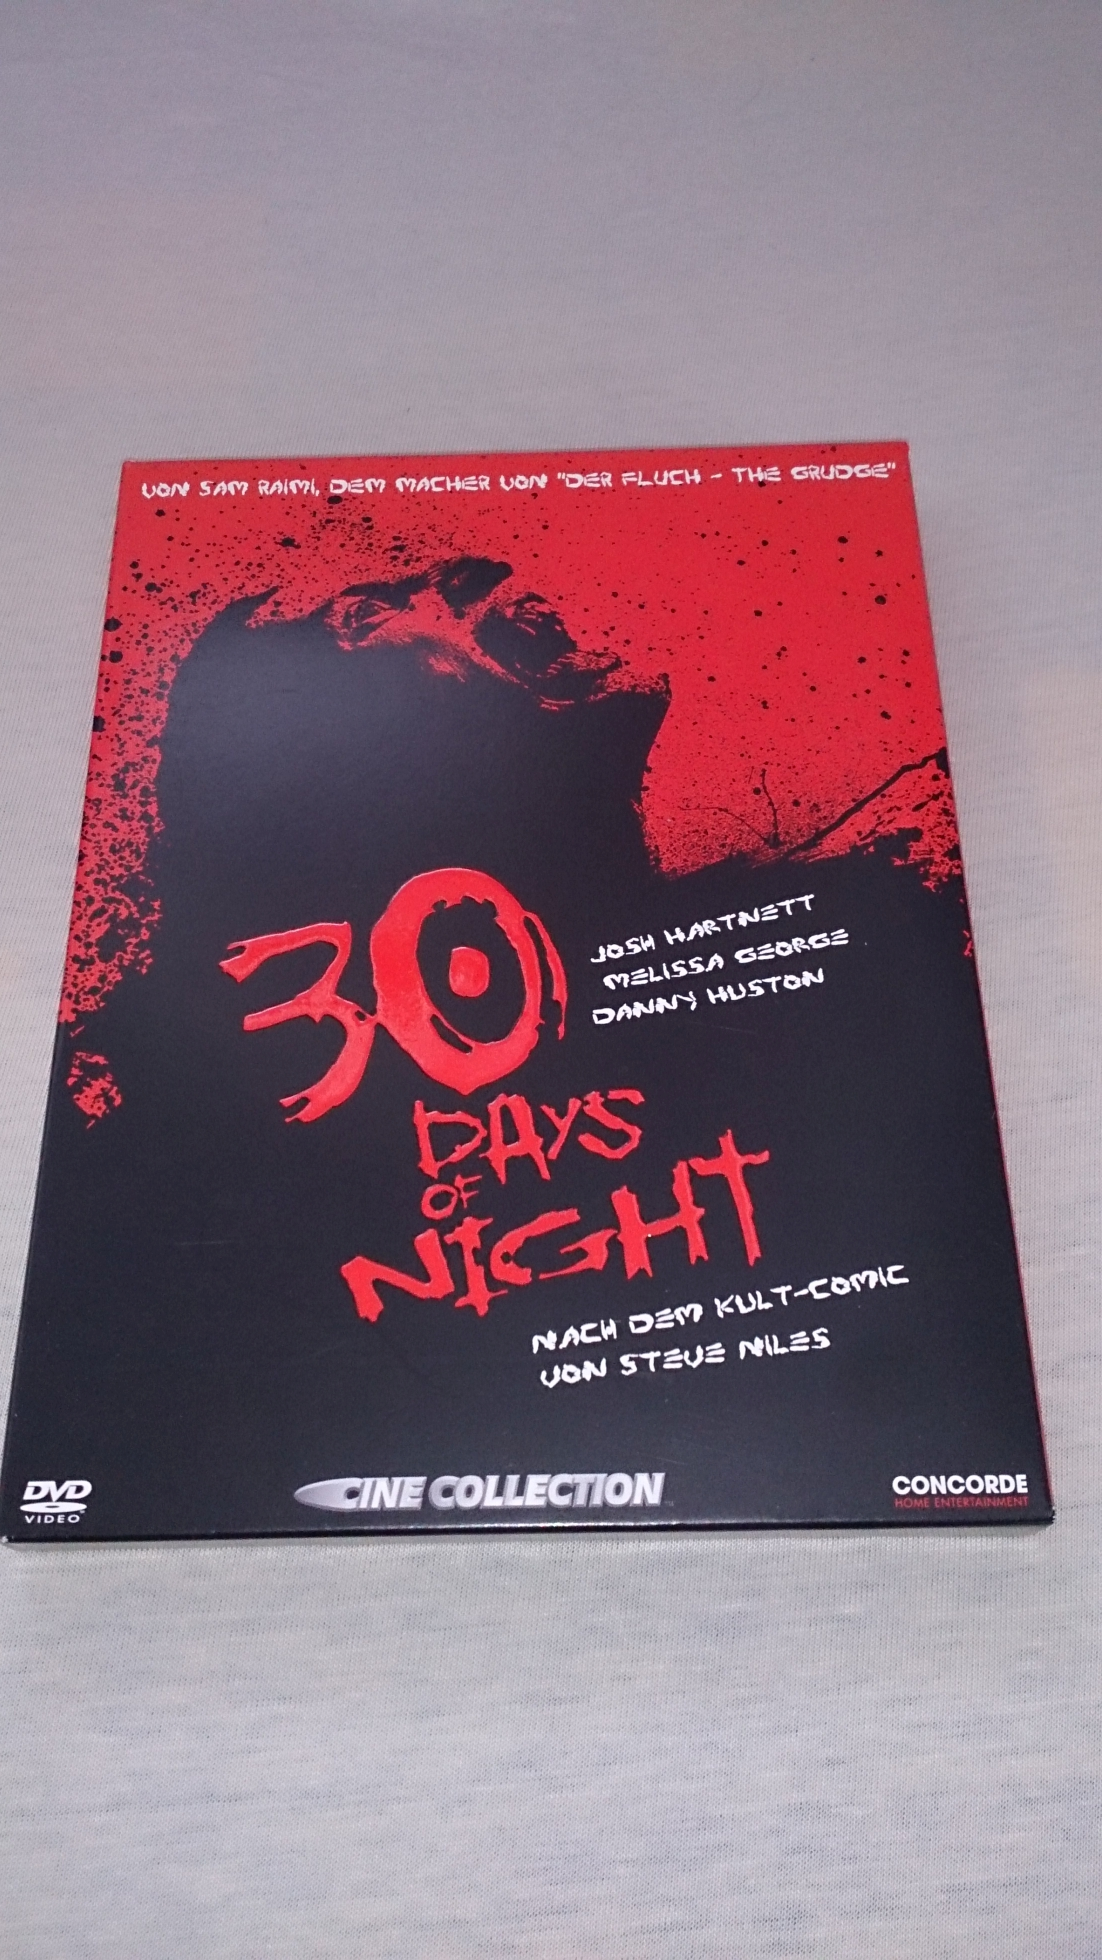 30 Days of Night - Cine Collection - Digipak im Schuber